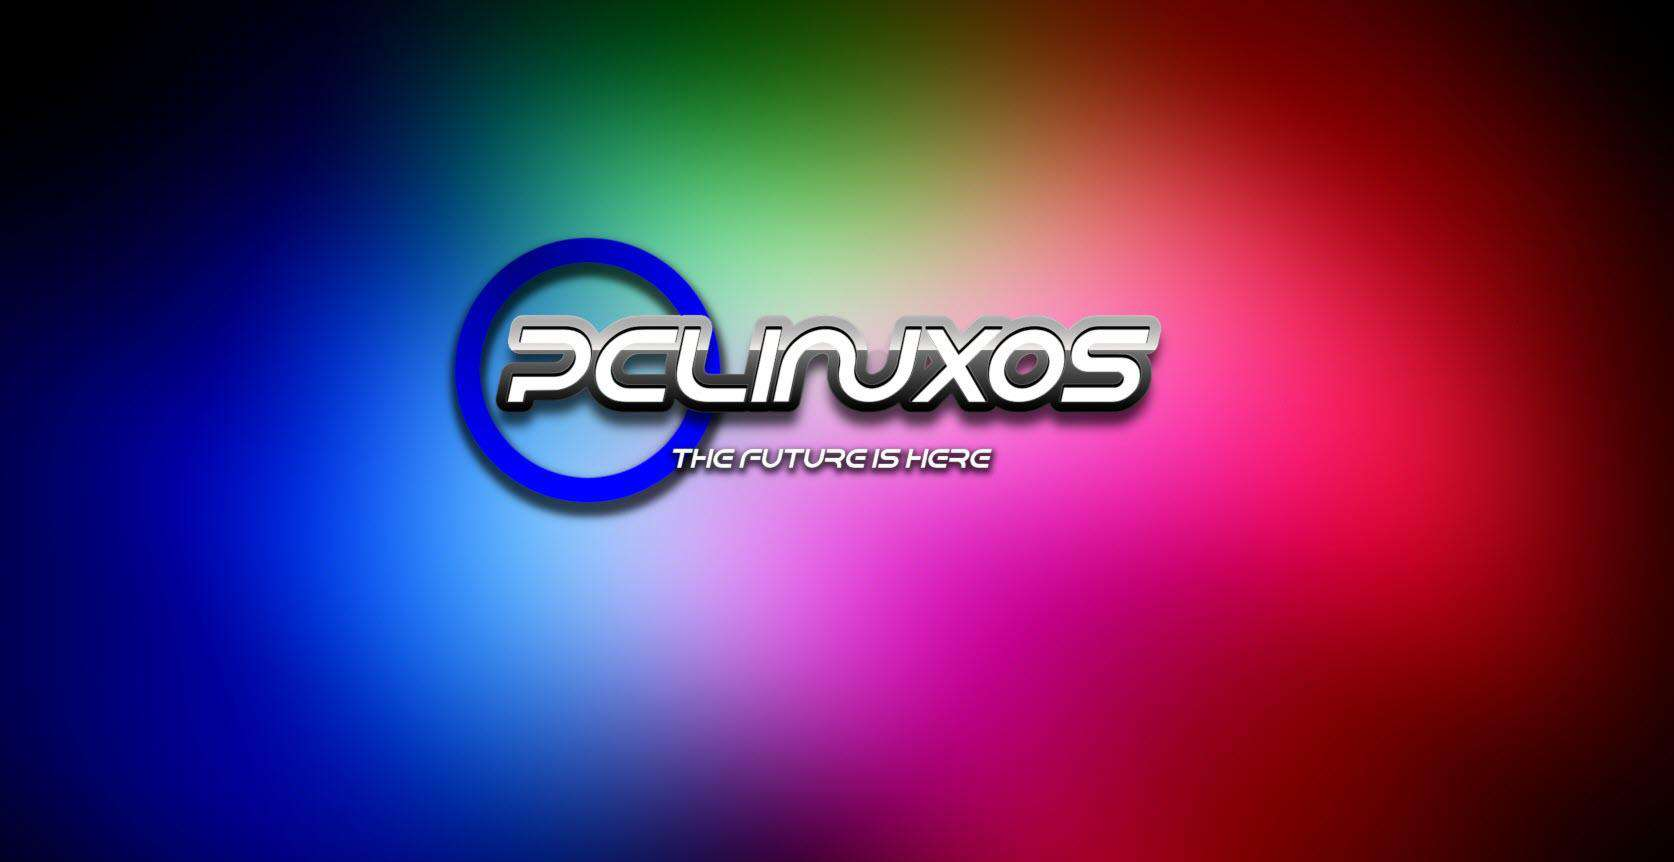 pclosclrs1 - PCLinuxOS 2021.0215 Windows replacement?